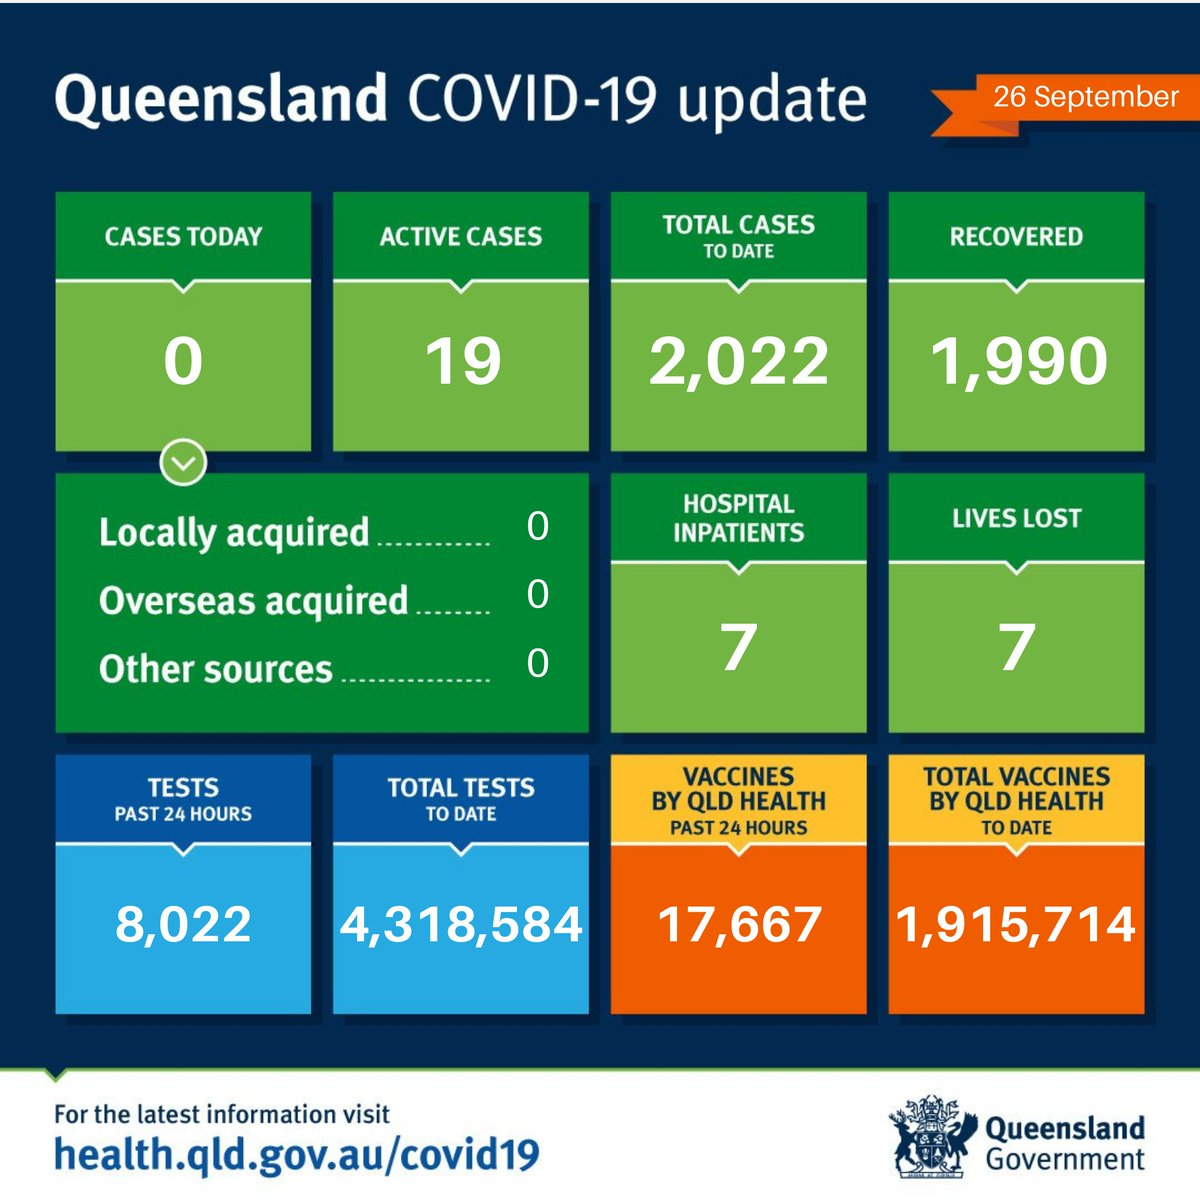 Queensland #COVID19 update 26/09/21 Today we have recorded no new cases of COVID-19. Detailed information can be found here: health.qld.gov.au/covid-data